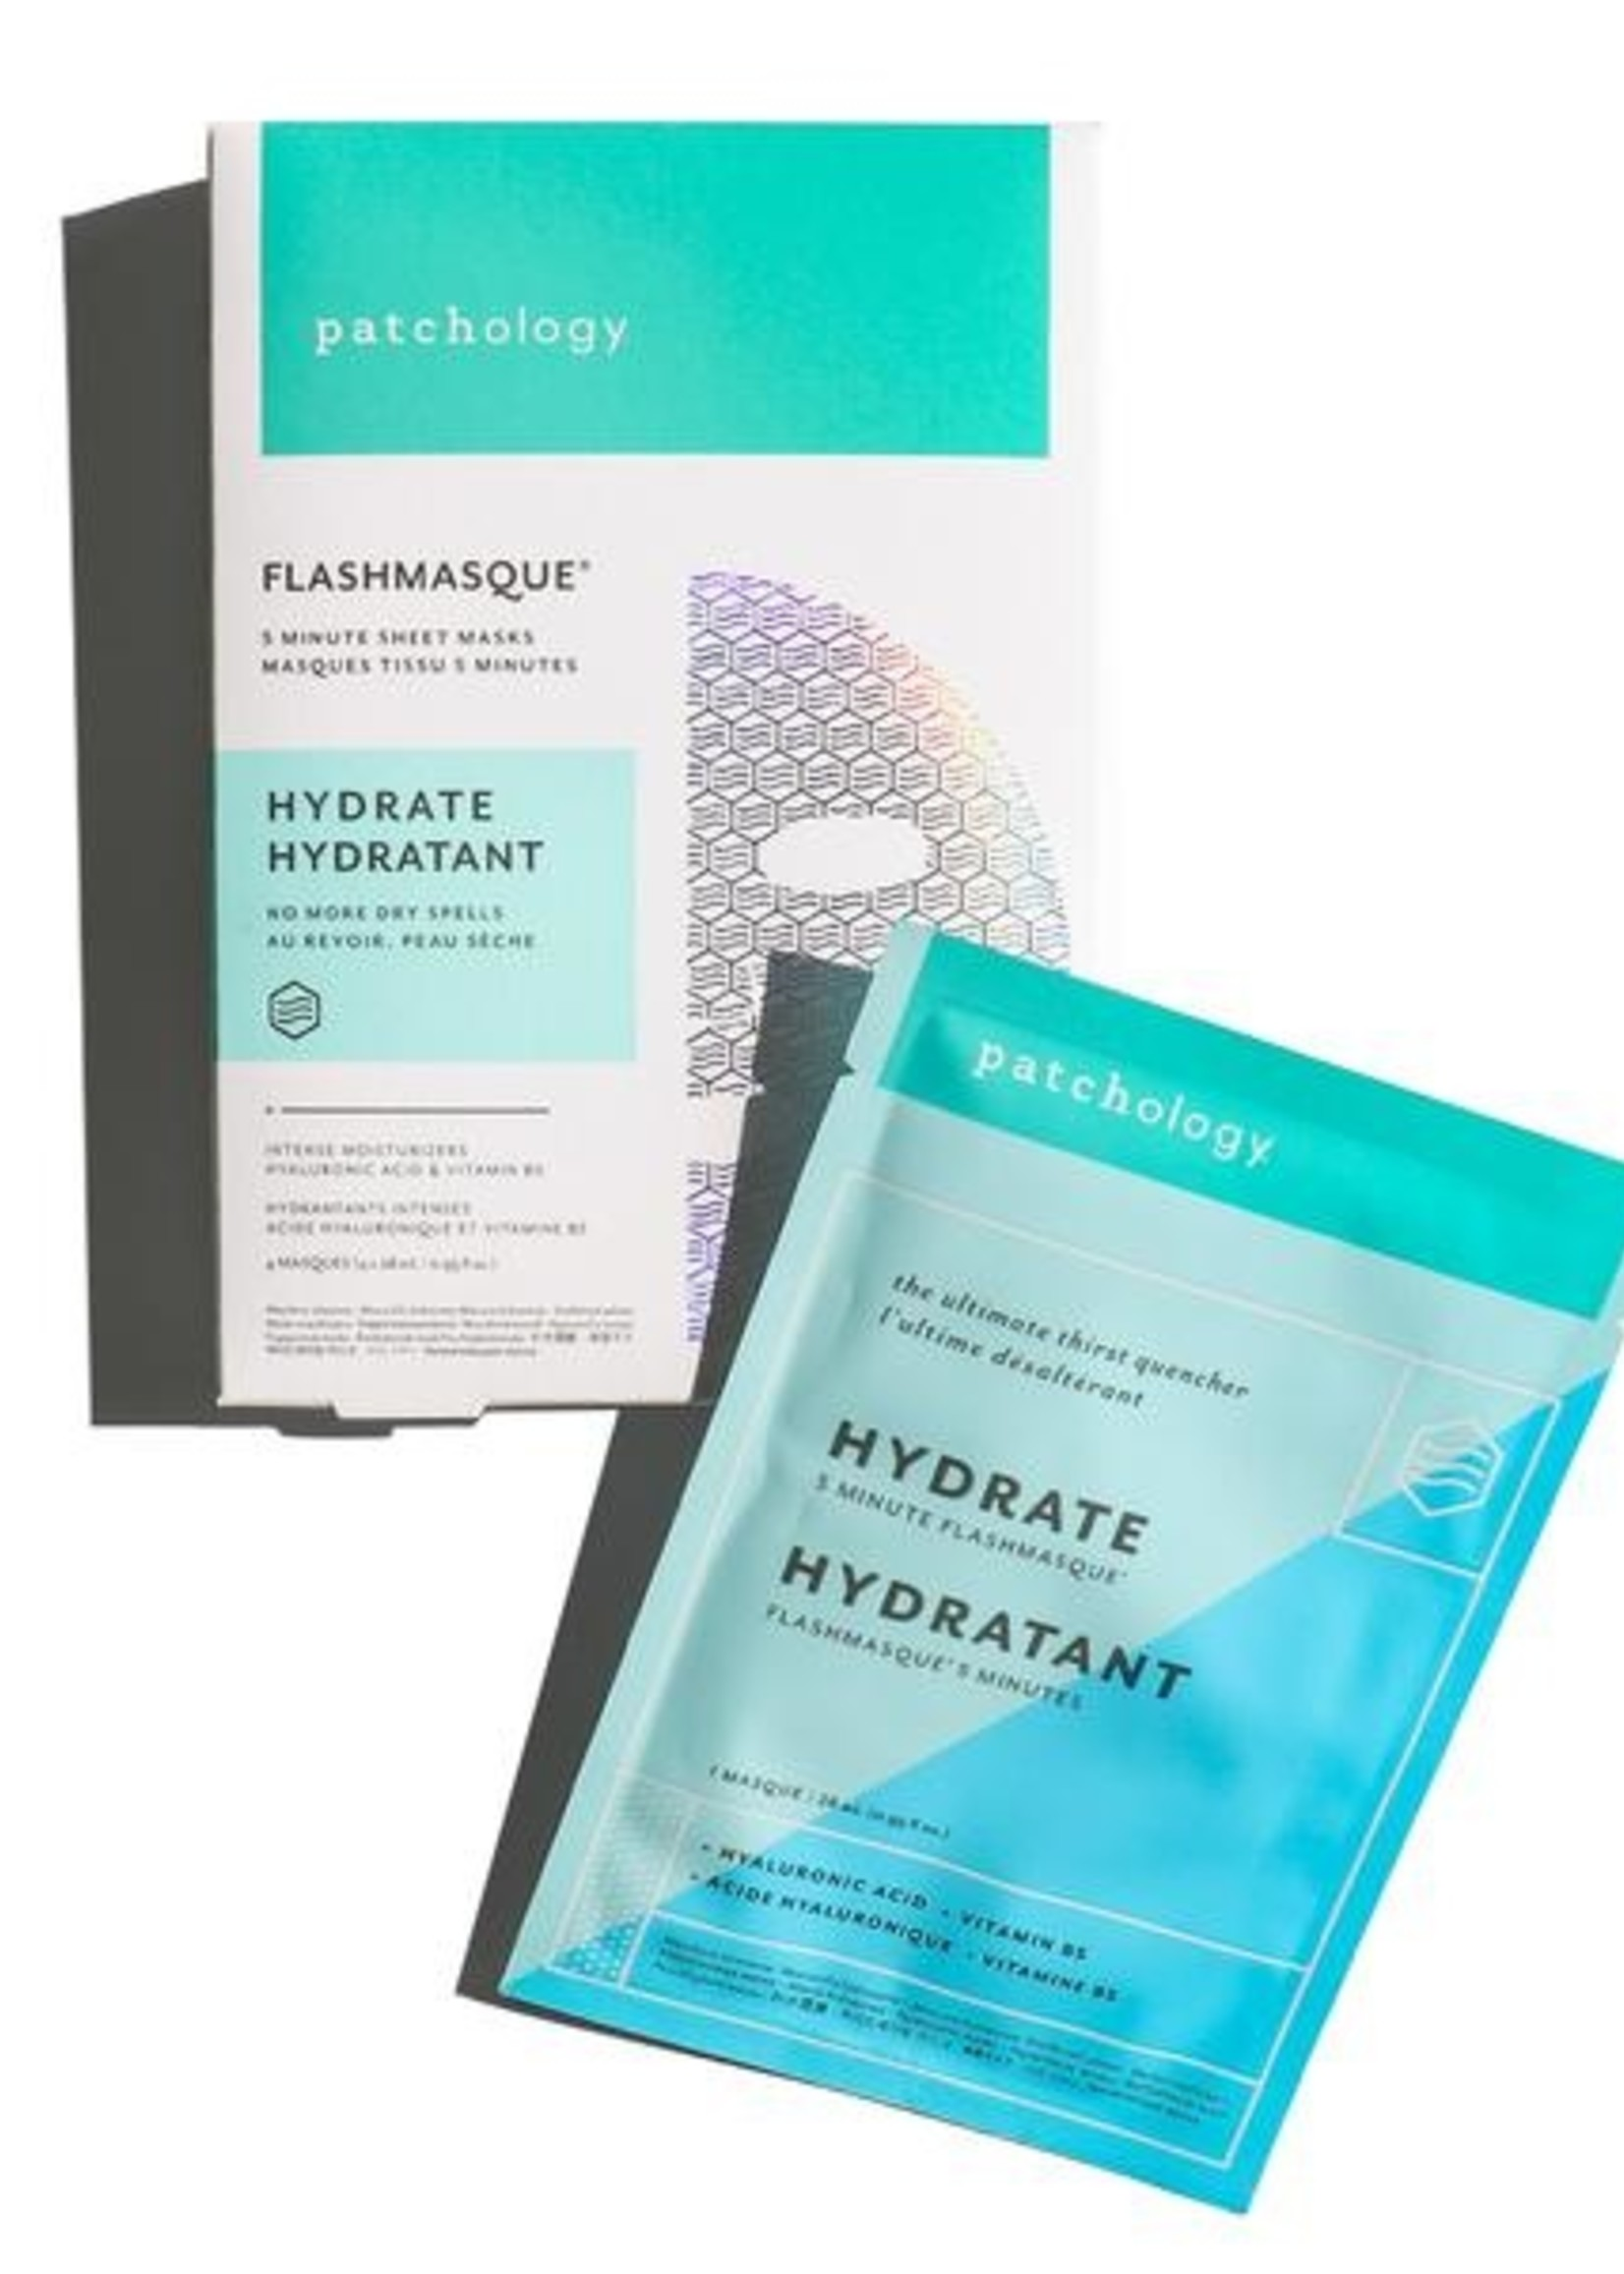 Patchology Hydrate 5-Minute Flashmasque by Patchology